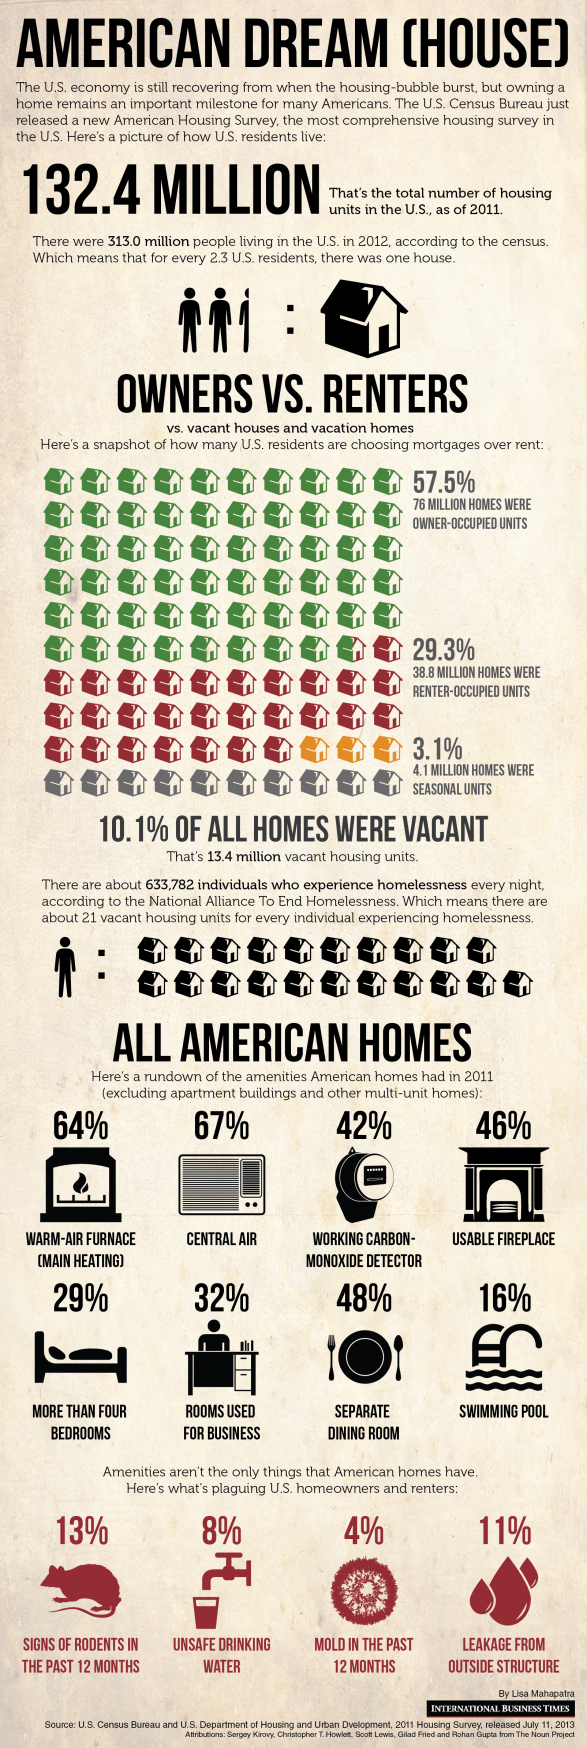 US Housing: The State Of The American Dream